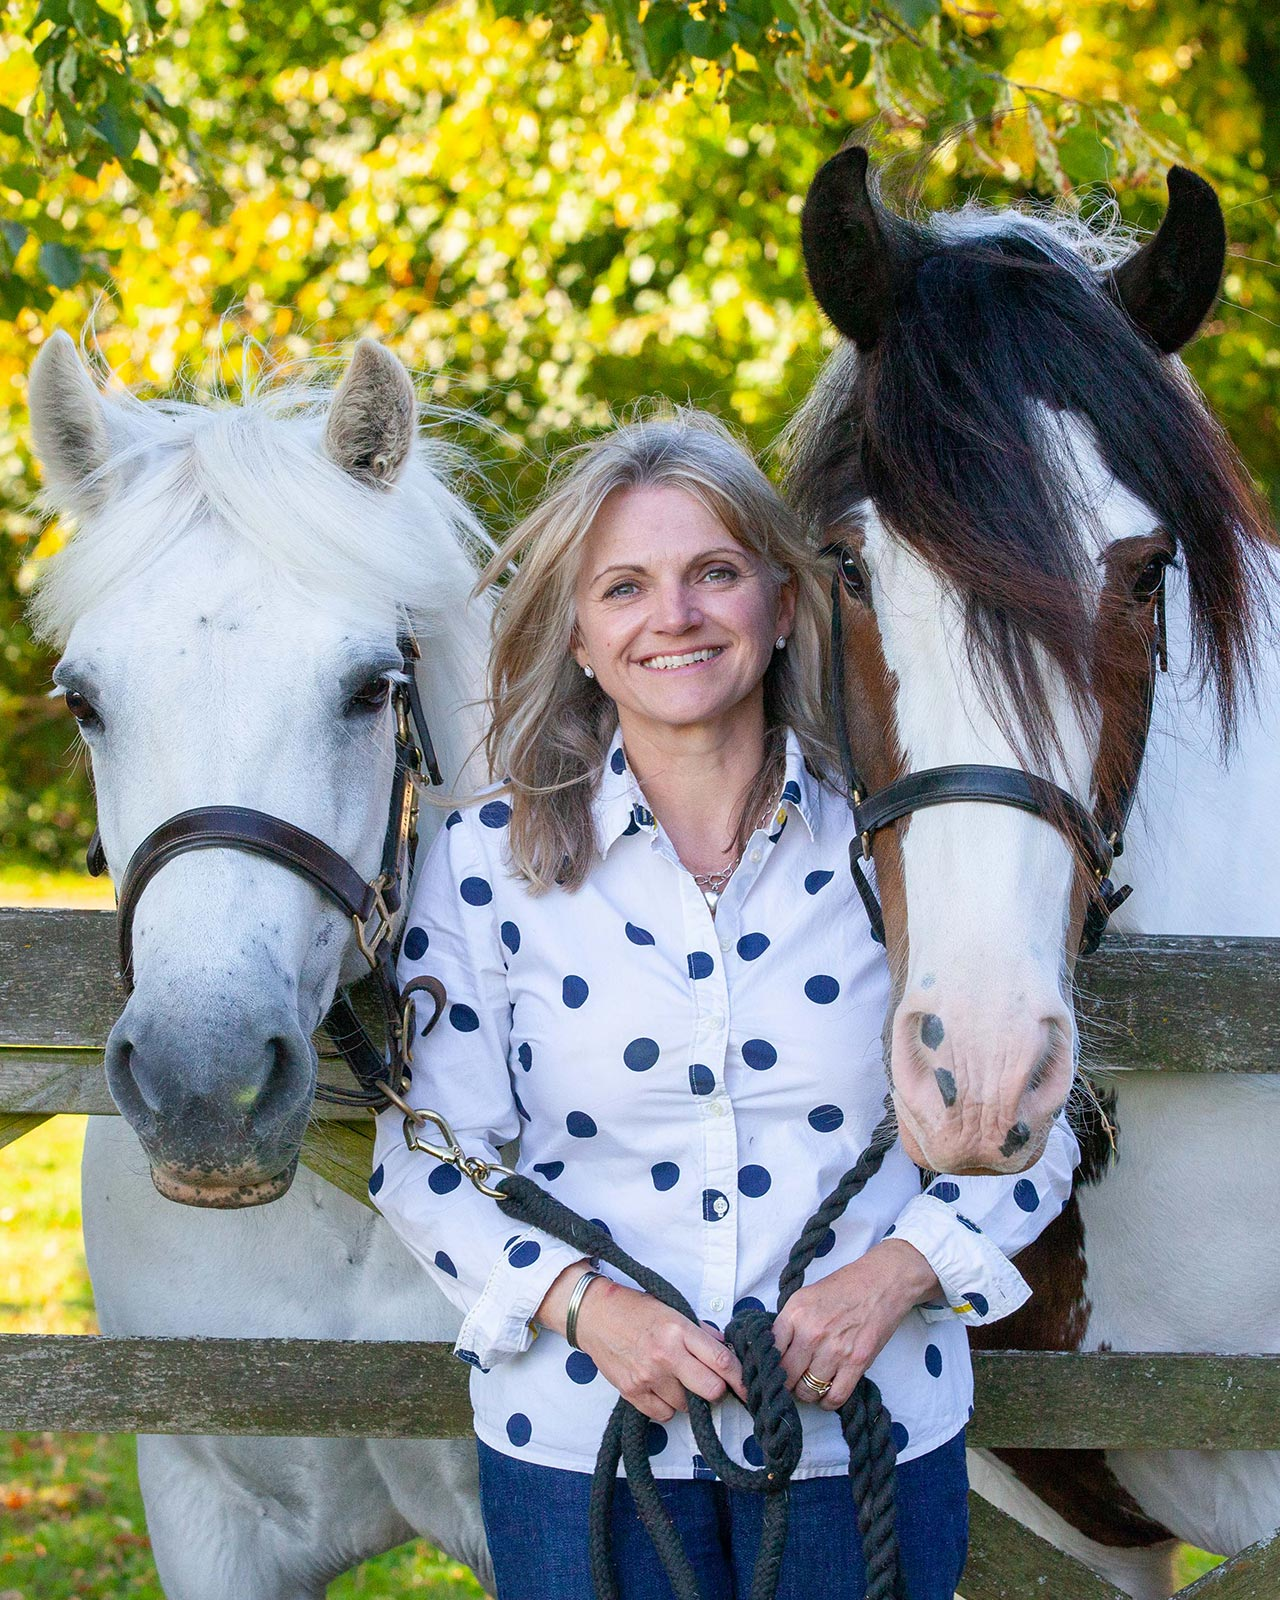 Photo shoot: woman with her horses